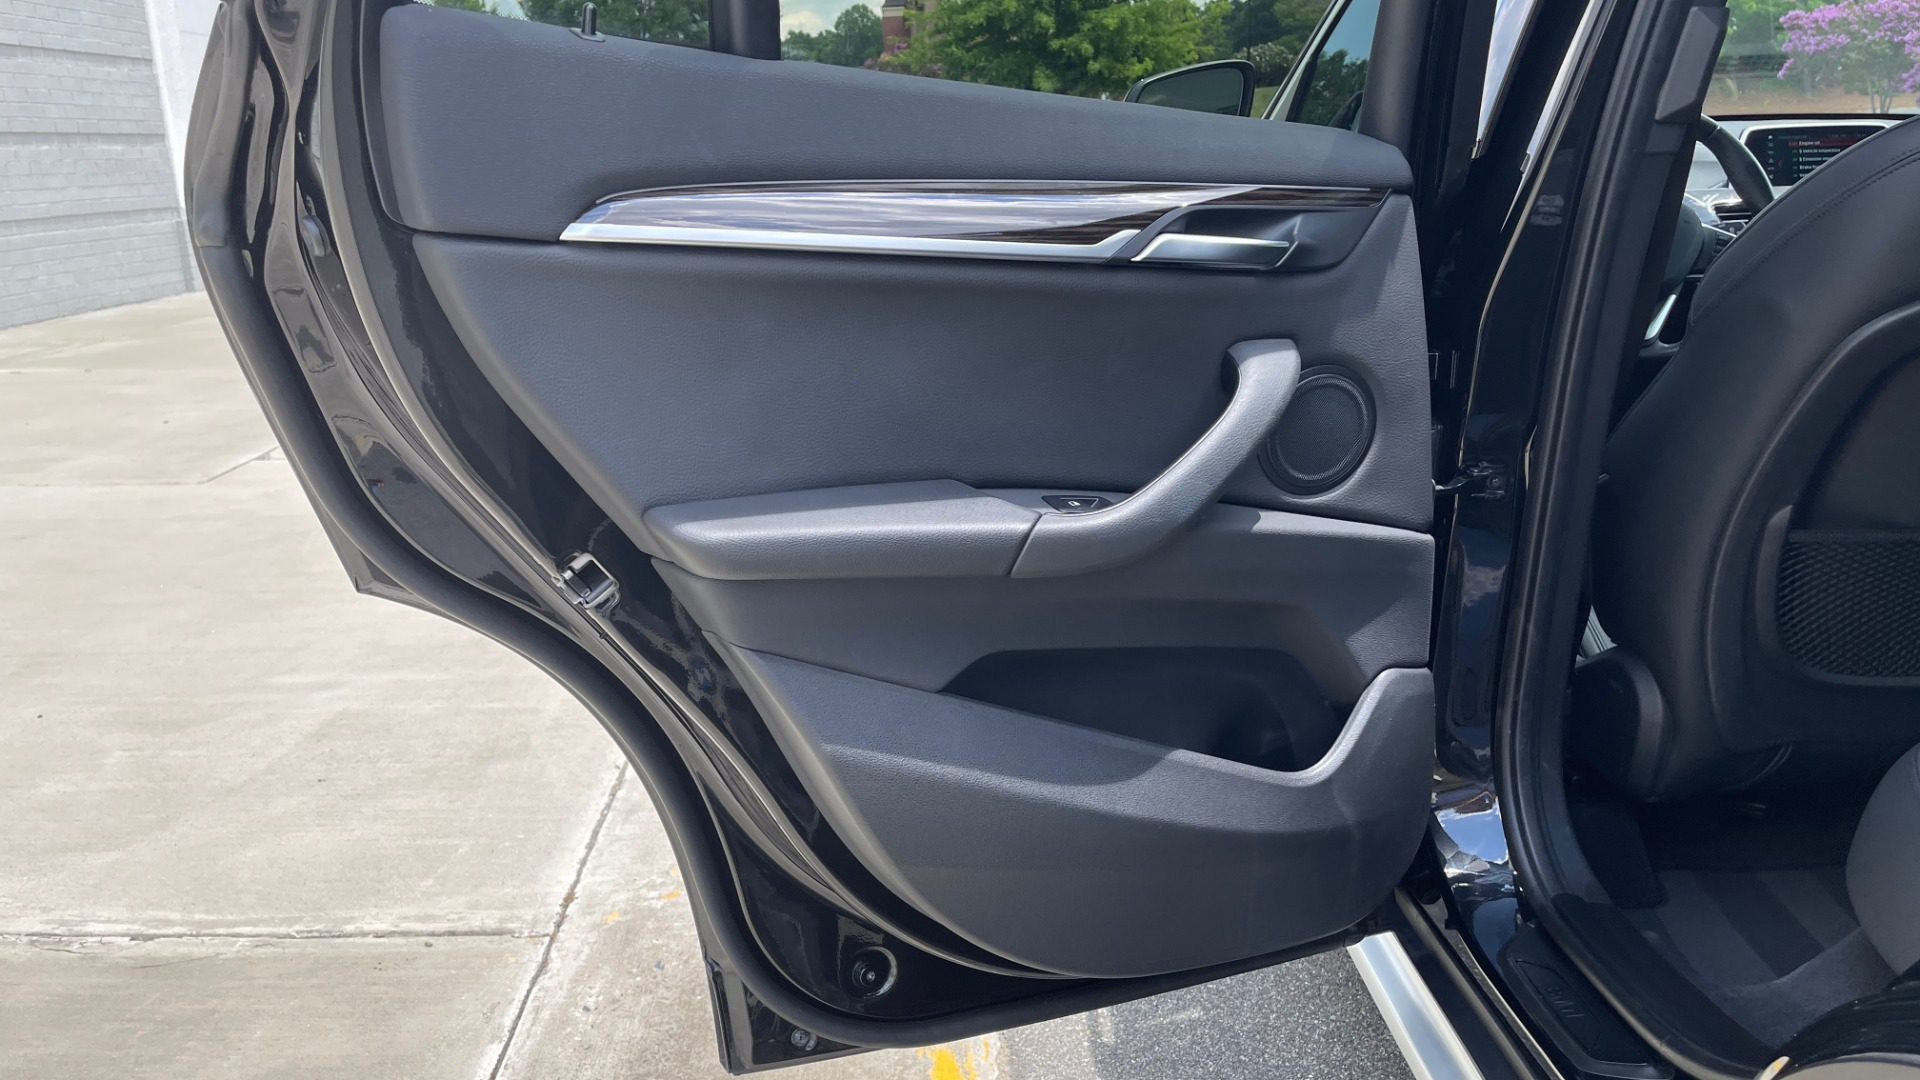 Used 2018 BMW X1 XDRIVE28I / NAV / CONV PKG / HTD STS / PANO-ROOF / REARVIEW for sale $29,995 at Formula Imports in Charlotte NC 28227 52